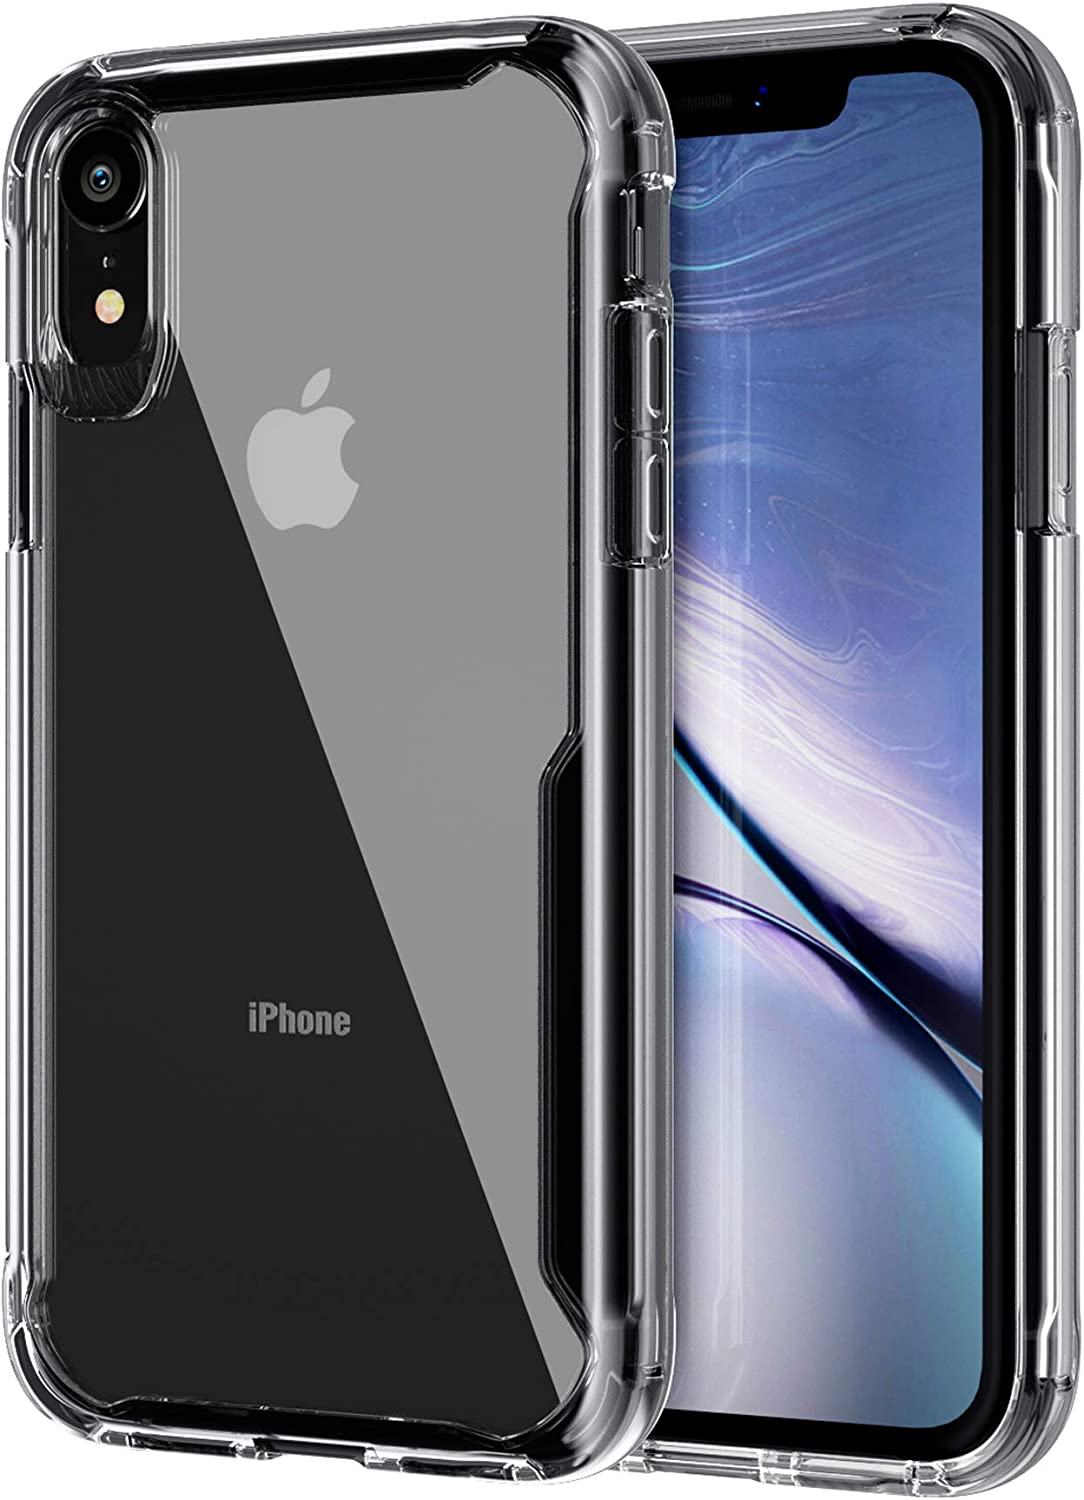 EFFENX iPhone XR Case Clear, iPhone XR Protective Case Shockproof Bumper Cover,Professional Camera Protection, Anti-Scratch Clear Cover (Black Clear)